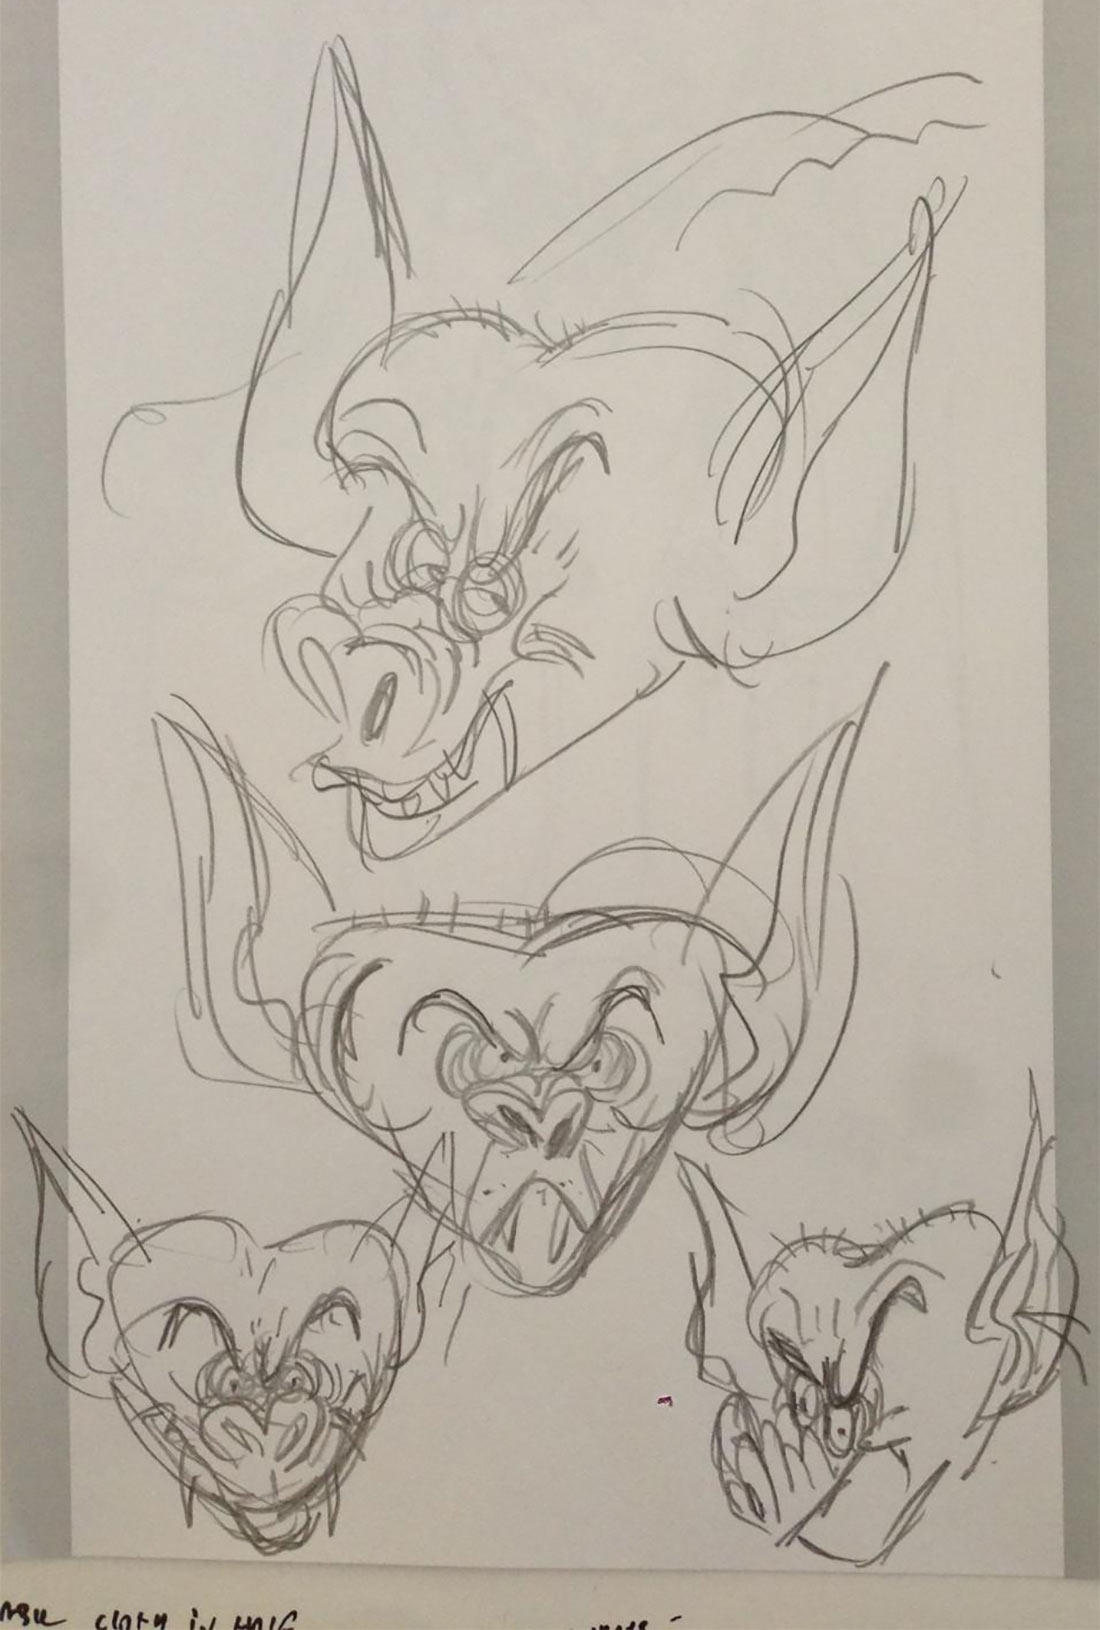 Rough sketches by Genndy Tartakovsky showing ideas for Bela.